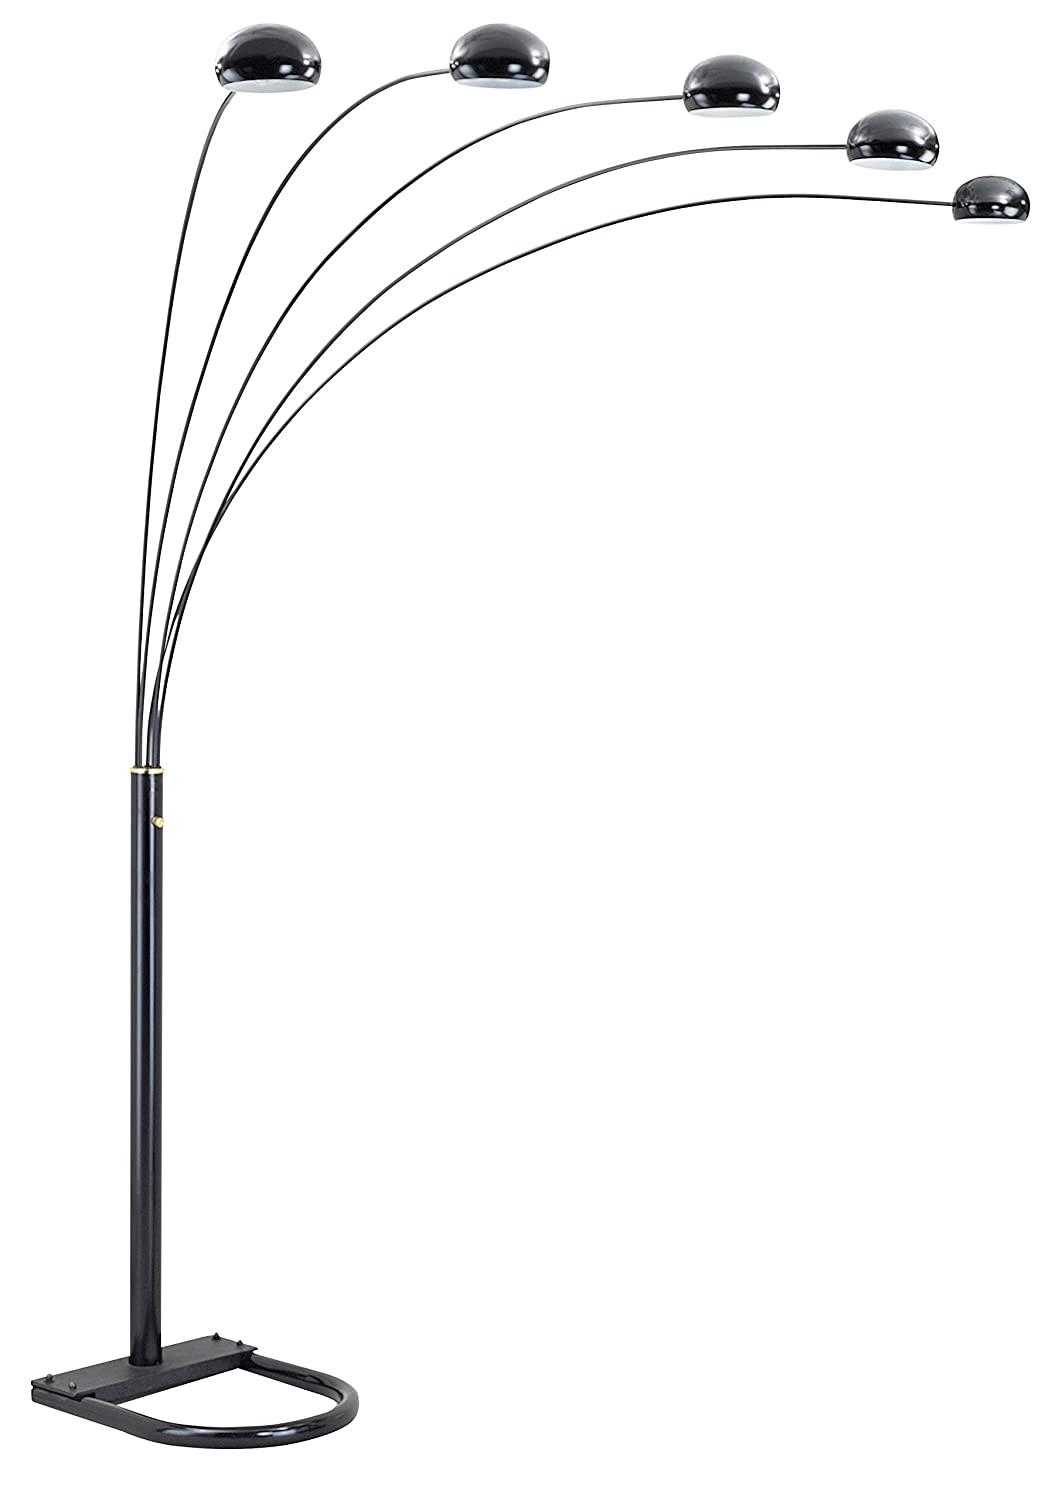 Amazon ok lighting ok 9628k 5 arch floor lamp 88 inch amazon ok lighting ok 9628k 5 arch floor lamp 88 inch polished black home improvement mozeypictures Image collections